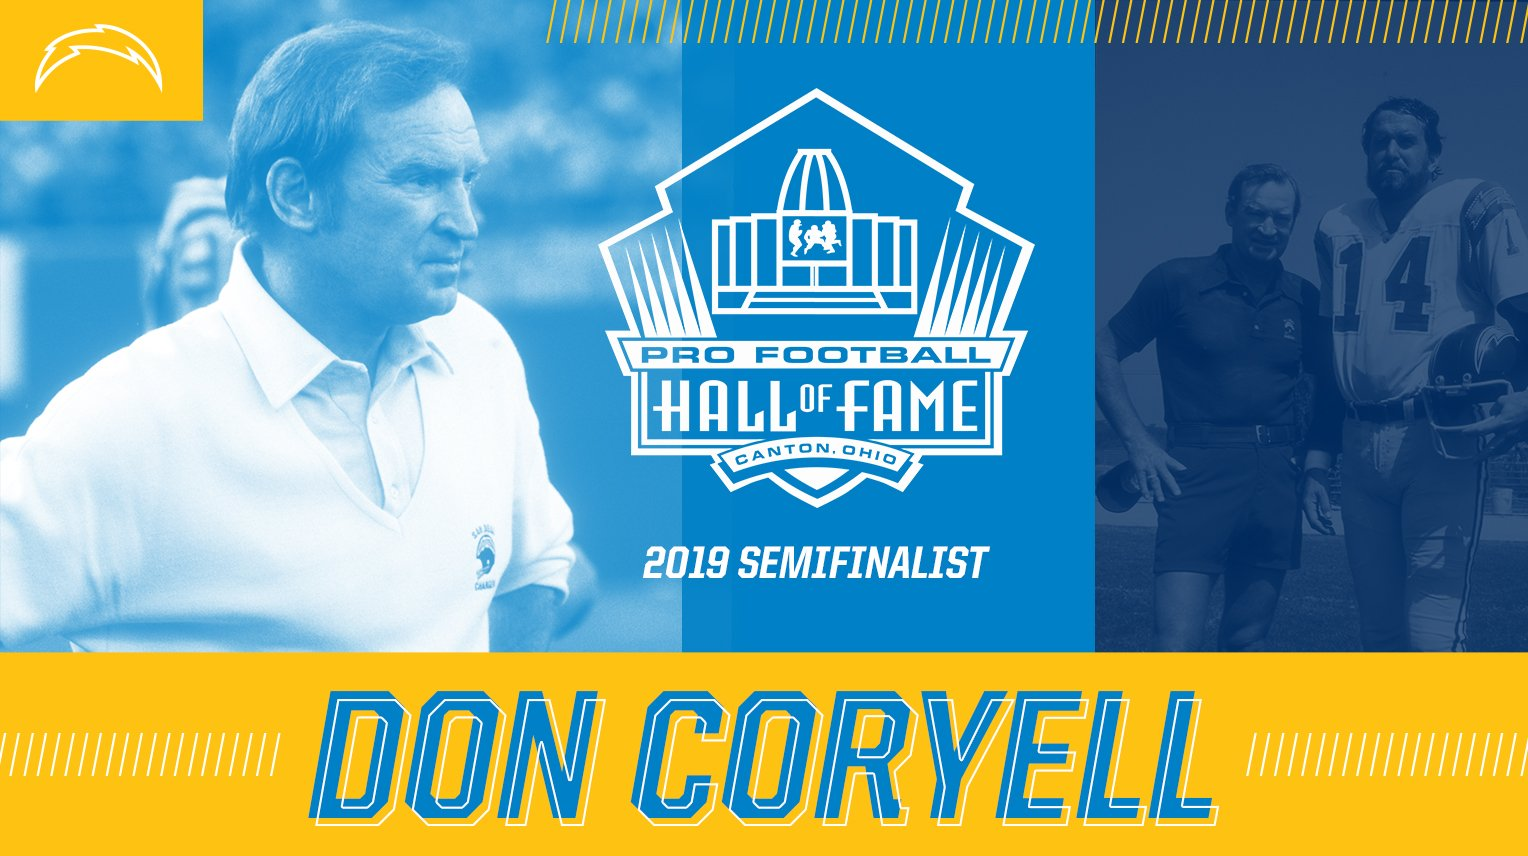 Don Coryell has been named a @ProFootballHOF semifinalist for the Class of 2019.  → https://t.co/lckMIFqXmx https://t.co/QI88UvKaky